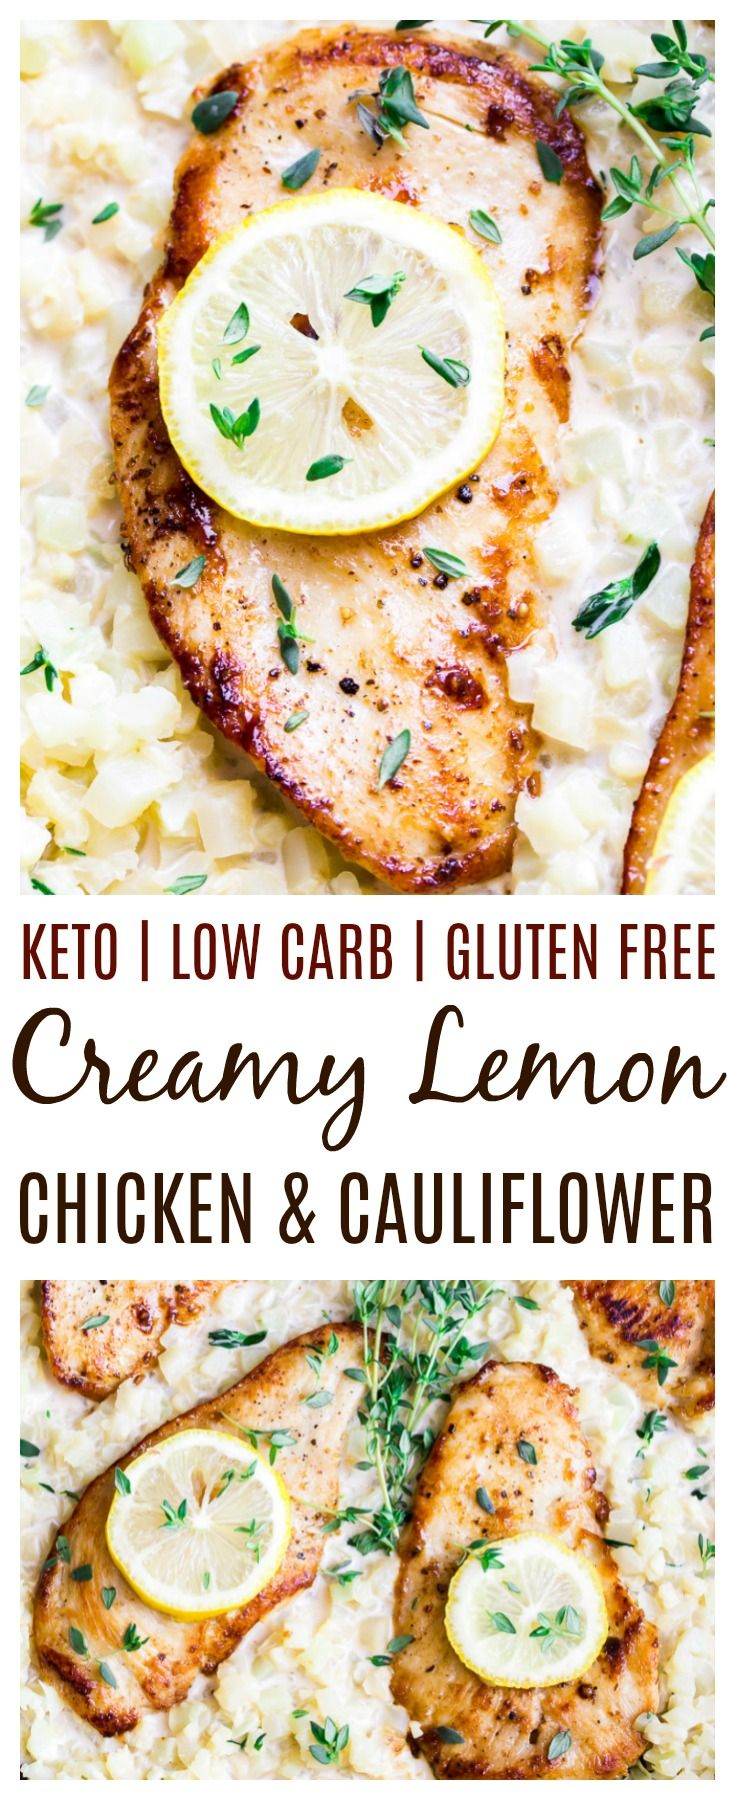 Skillet Creamy Lemon Chicken With Cauliflower A Delicious Low